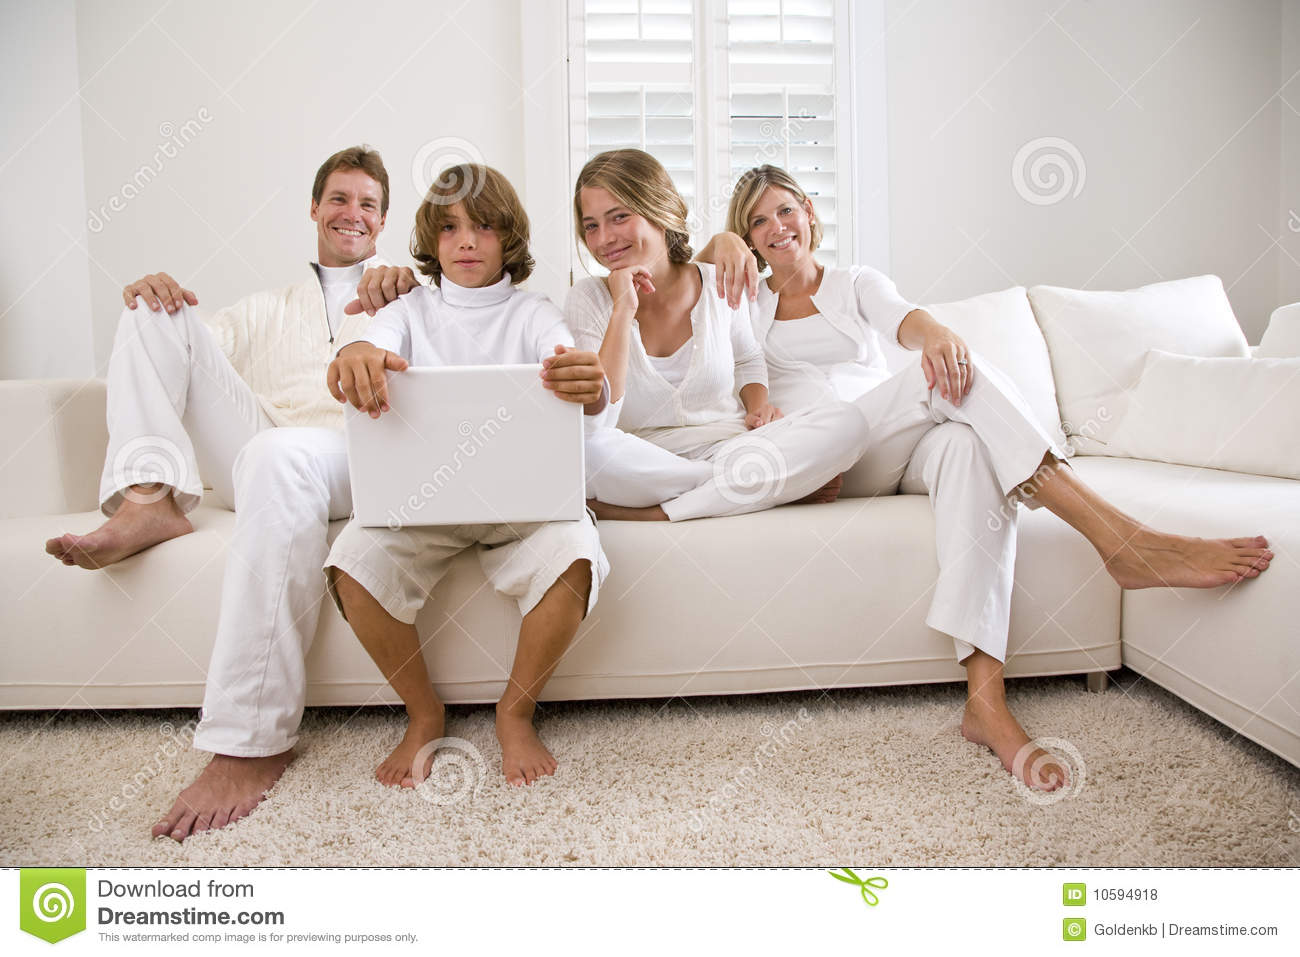 Family In White On White Sofa Stock Photo   Image Of Parents, Window:  10594918